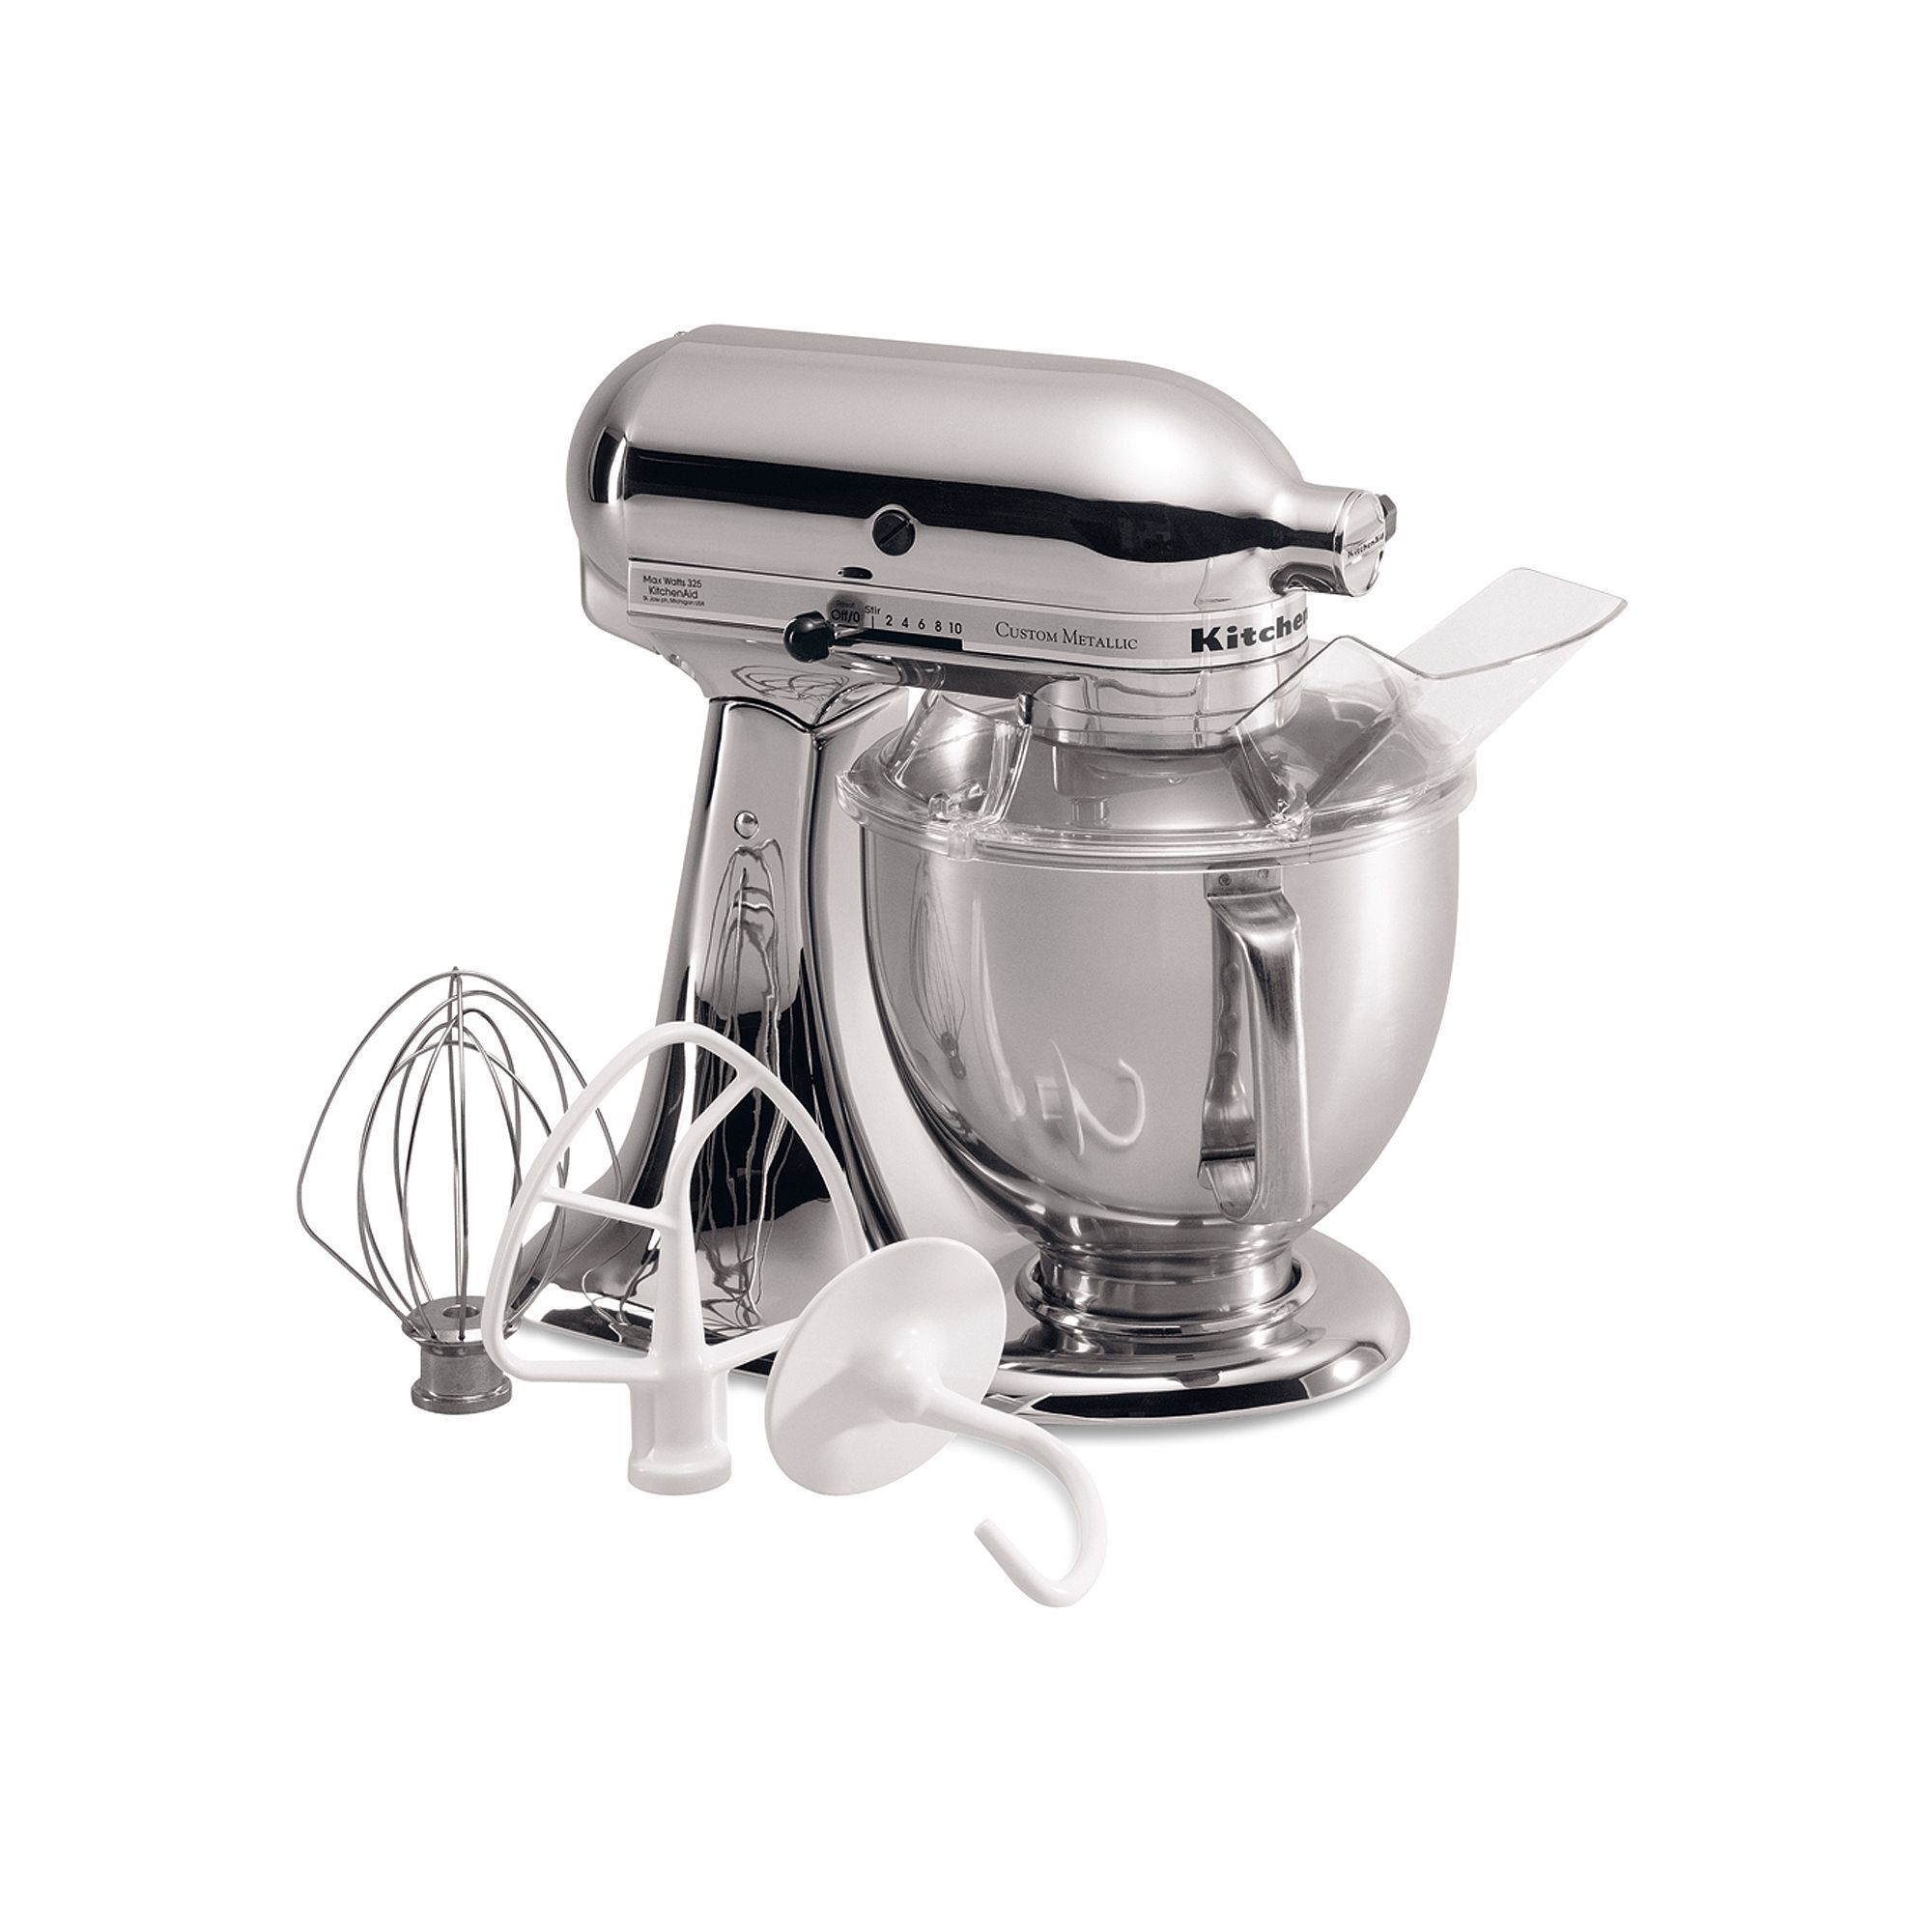 Kitchenaid Ksm152ps Custom Metallic 5 Qt Stand Mixer